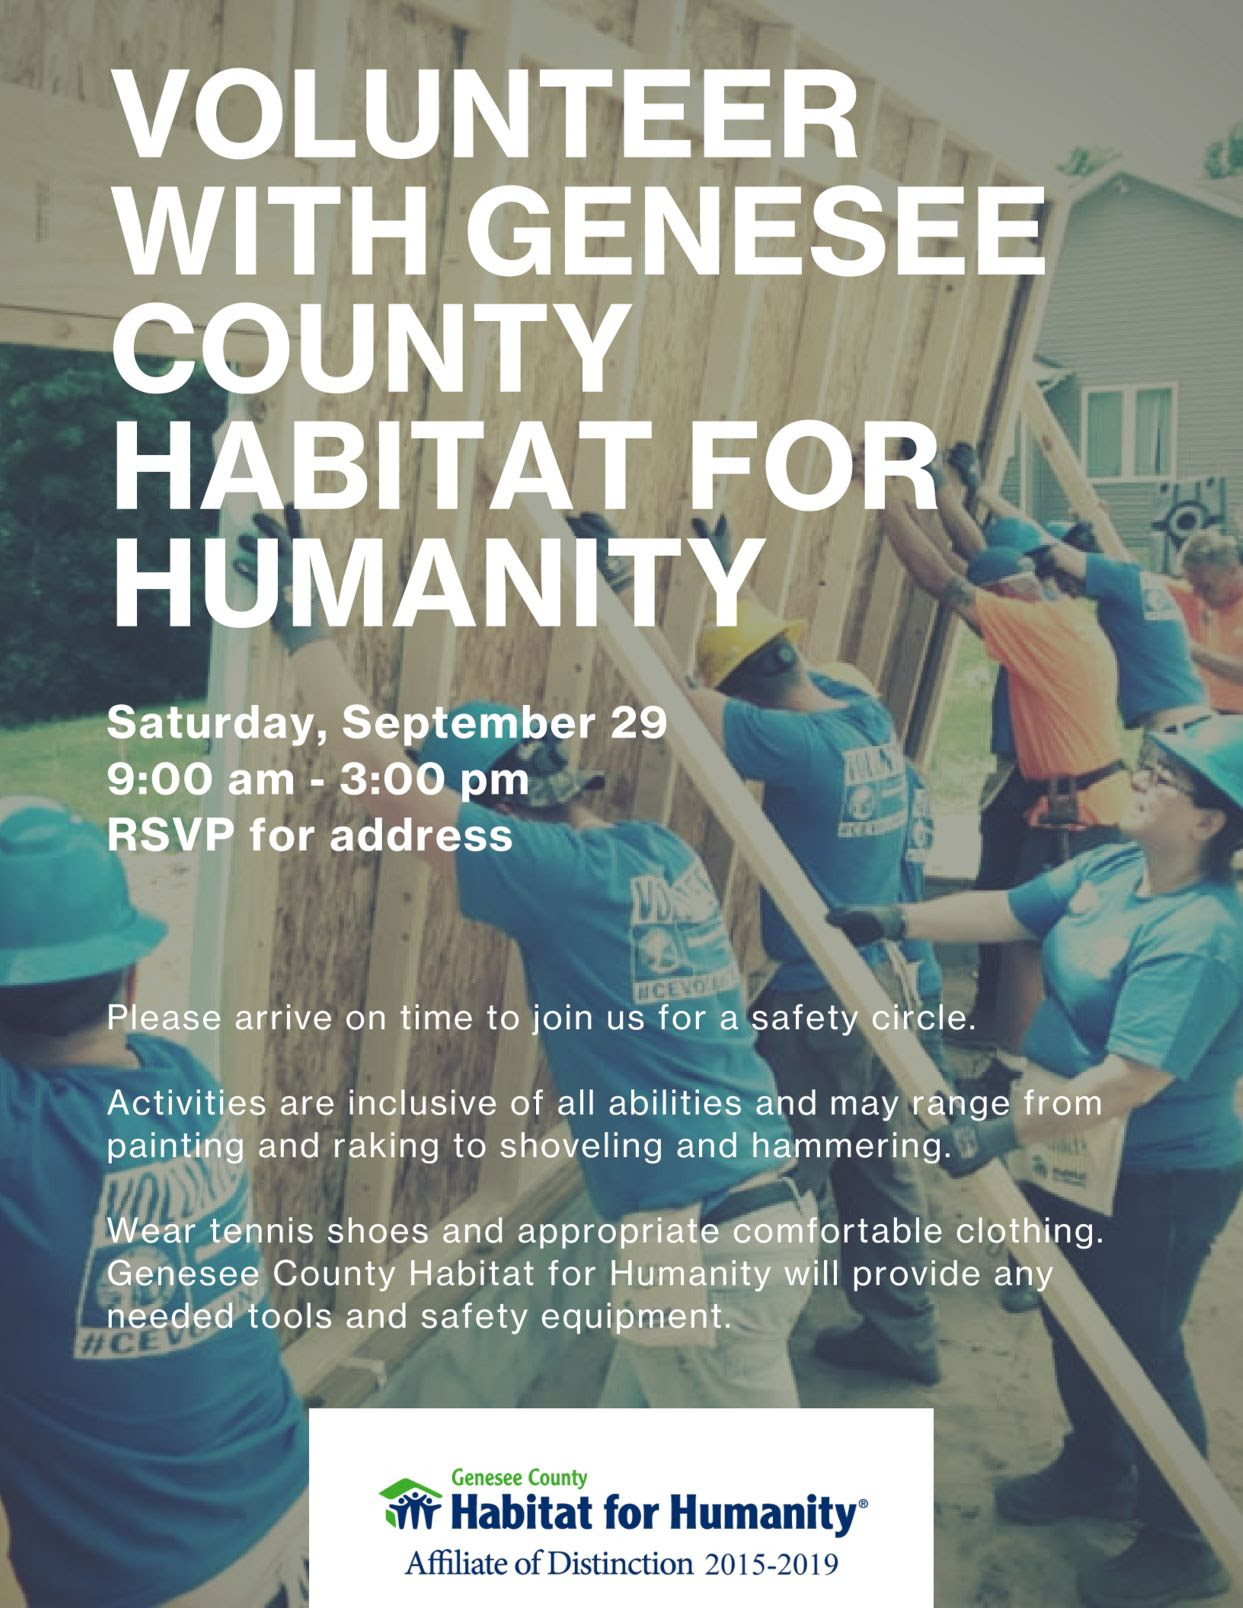 Volunteer with Genesee County Habitat for Humanity Saturday, September 29, 2018